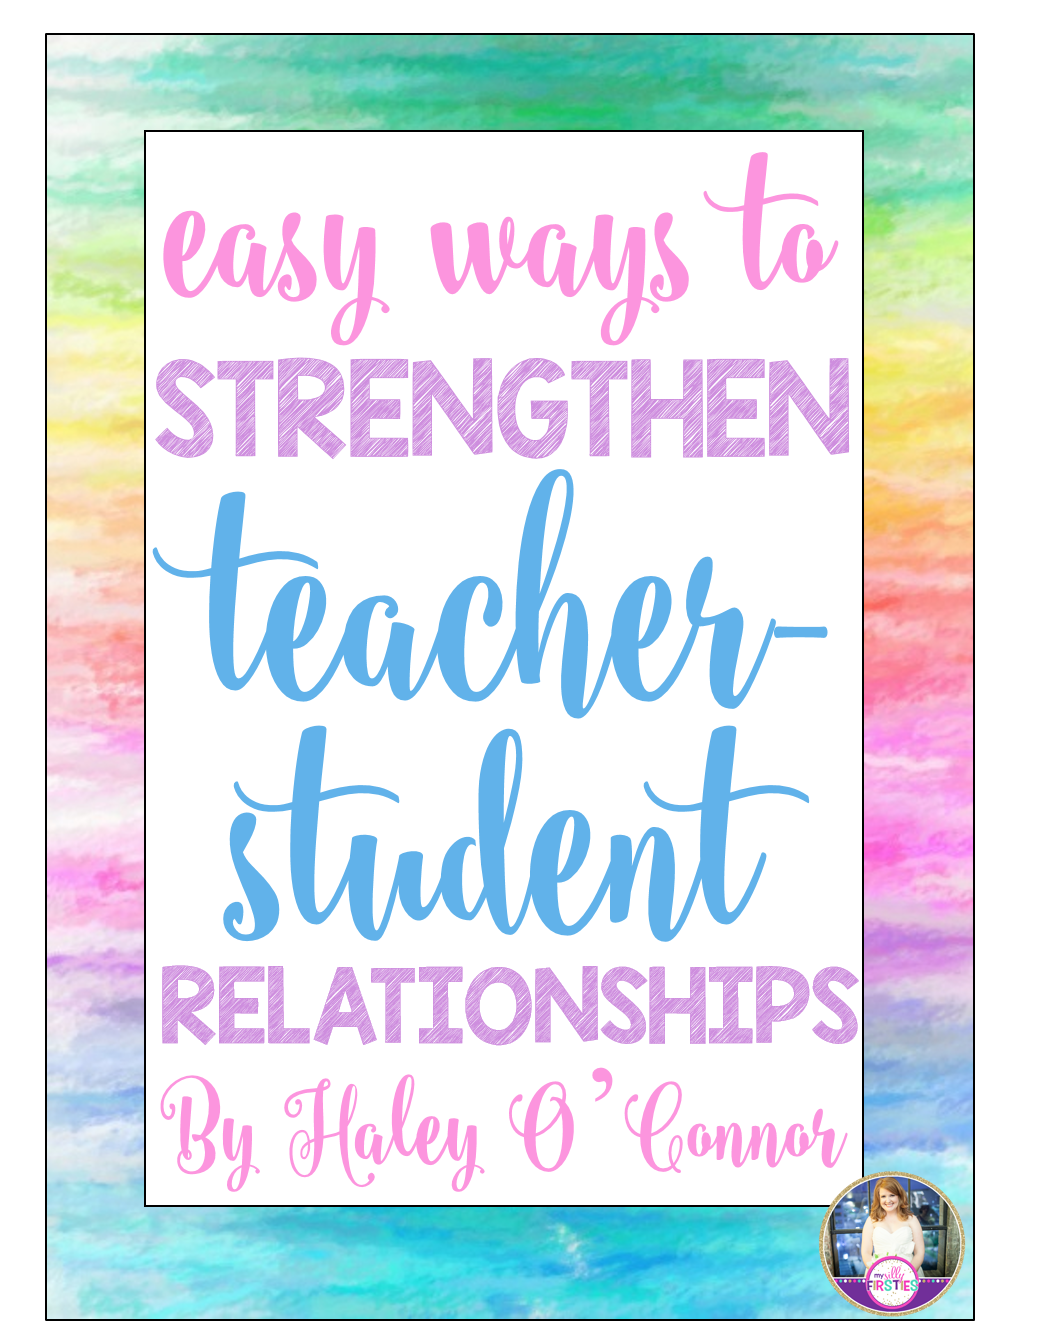 My Silly Firsties: Easy Ways to Build Relationships With Your Students